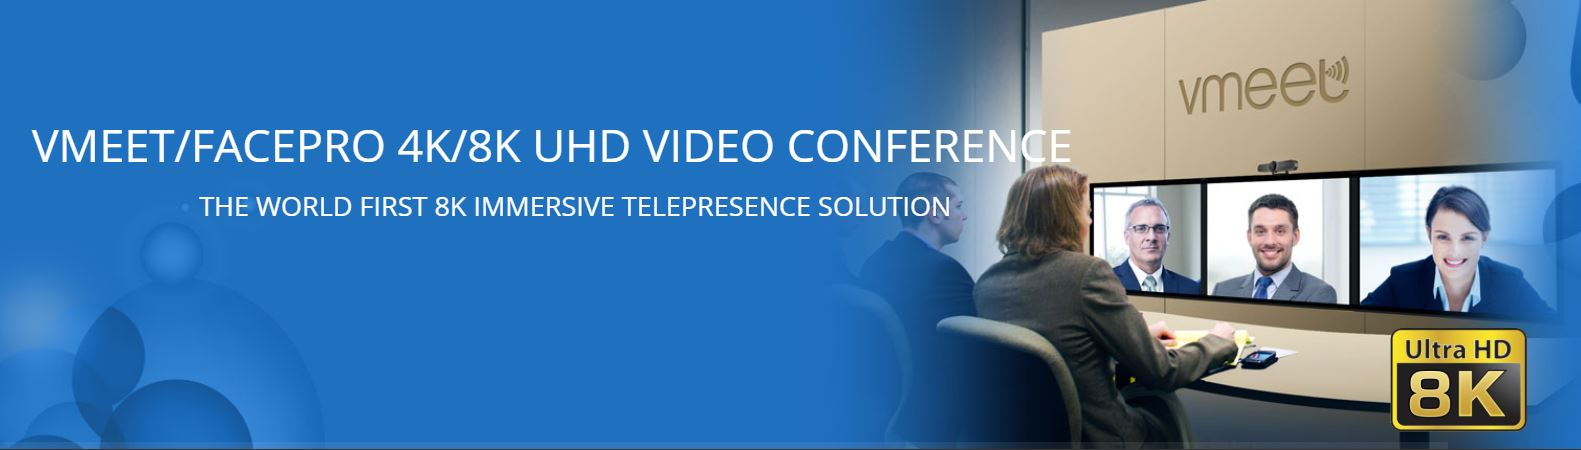 Softfoundry announce the world's first 4K/8K Video Conference for phones, PC, meeting rooms and several vertical applications